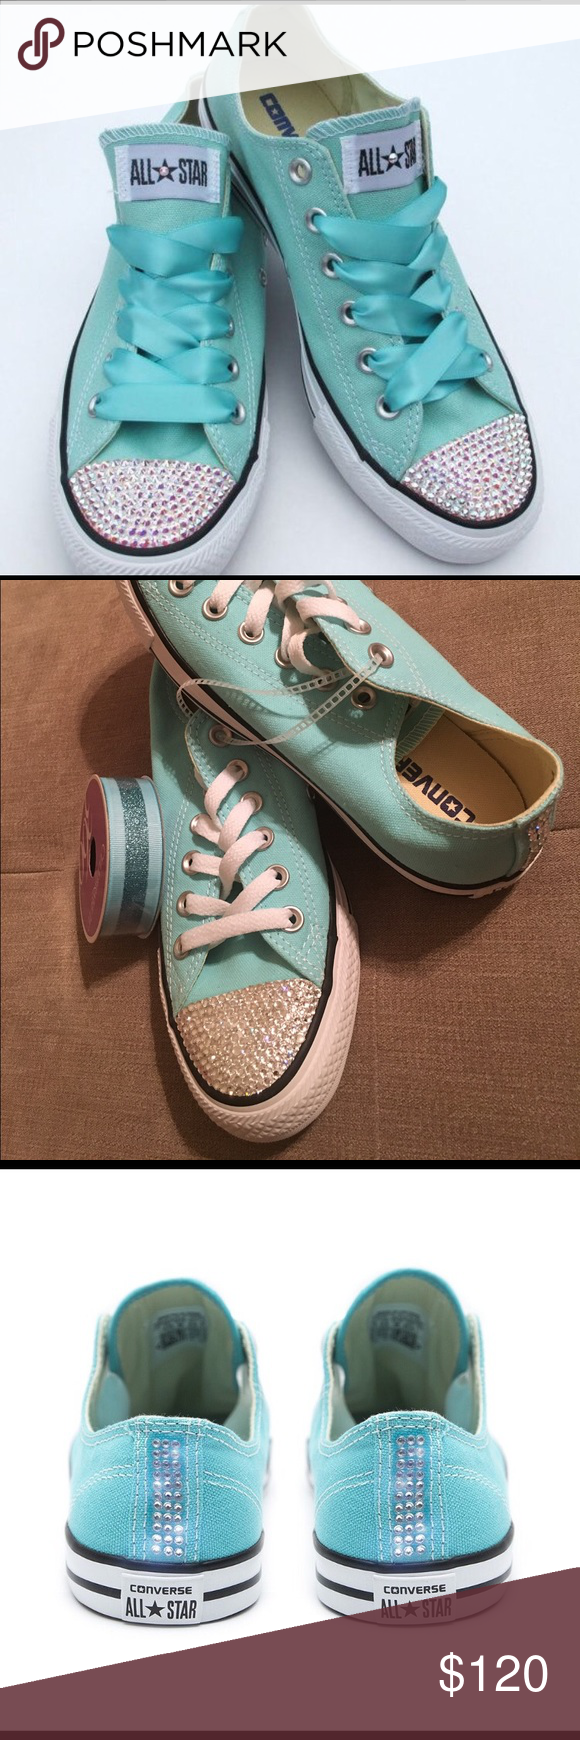 d0e90a4967ec Teal bling converse custom made Custom Order Today! 1-3 week turnaround  time from time of order until shoes delivered at your doorstep.